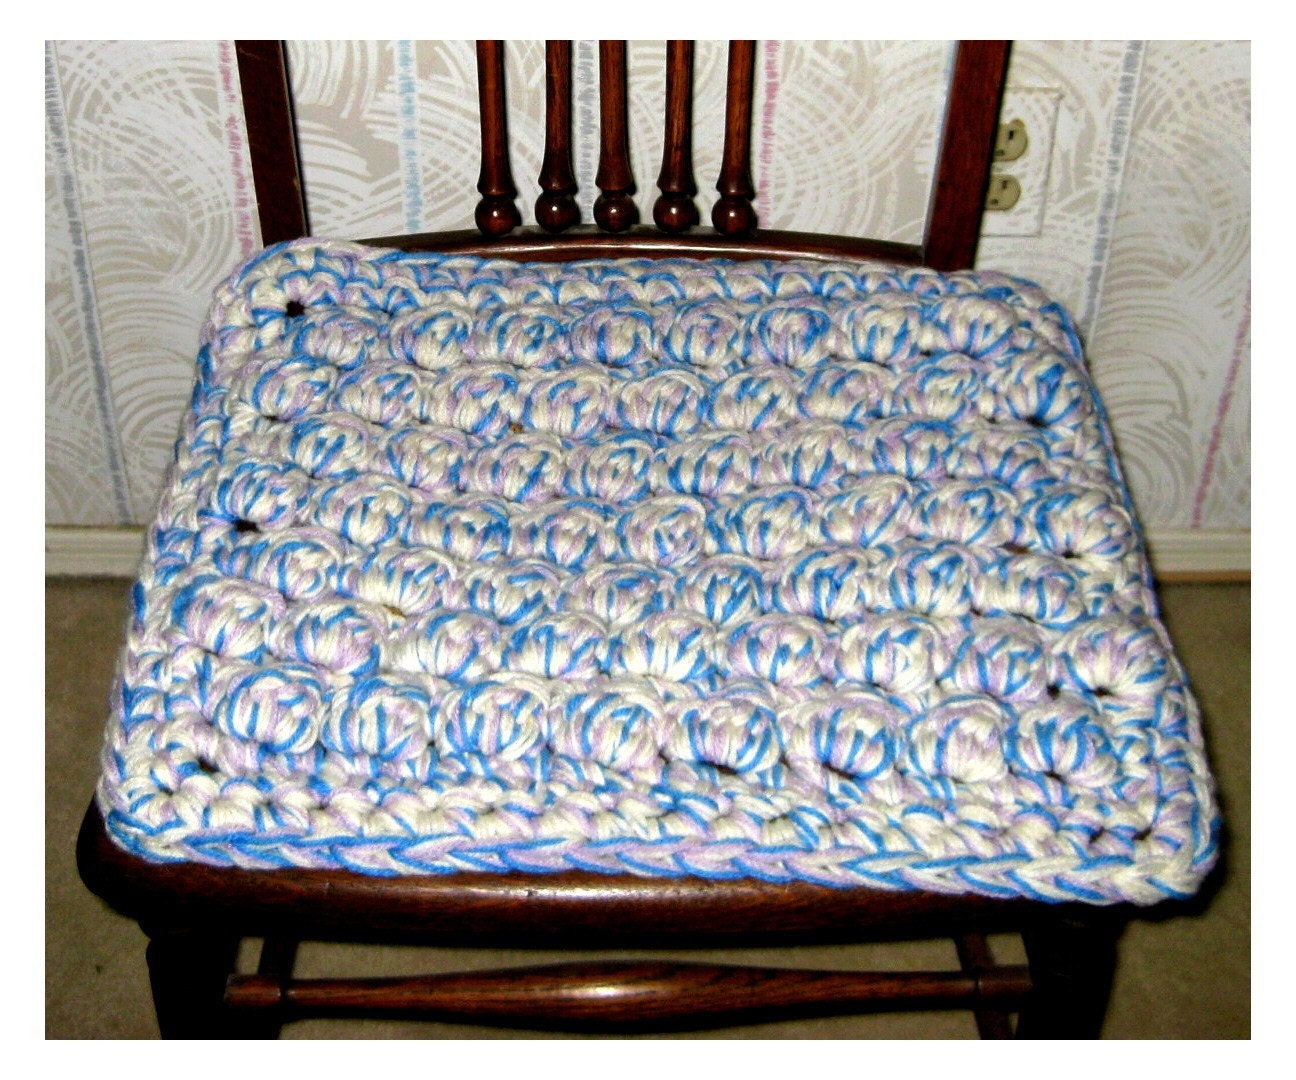 Crocheted Chair Cushion Stadium Seat Wheelchair Pad By Crochetgal